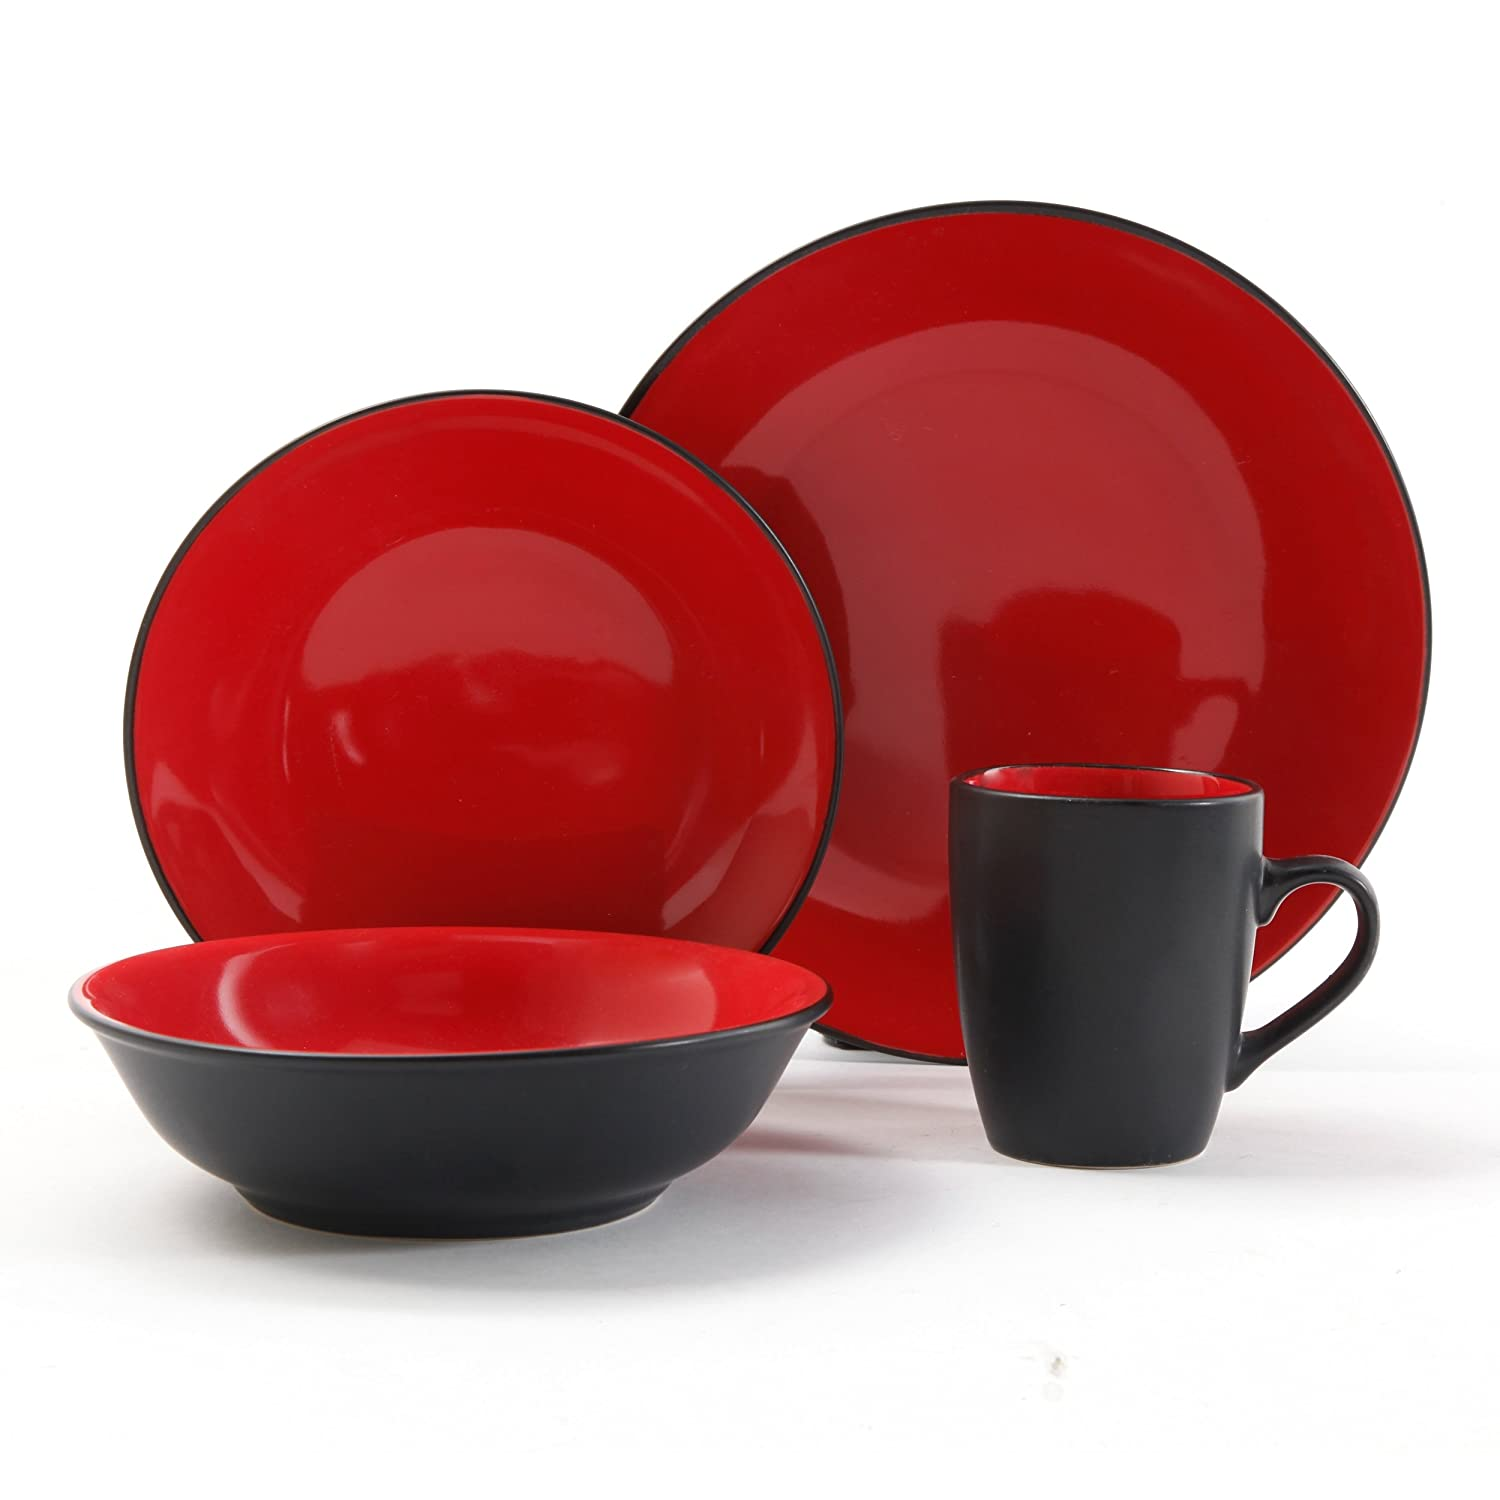 Amazon.com | Gibson Vivendi 2-Tone Dinnerware Set 16-Piece Red/Black Dishes Dinnerware Sets  sc 1 st  Amazon.com & Amazon.com | Gibson Vivendi 2-Tone Dinnerware Set 16-Piece Red ...